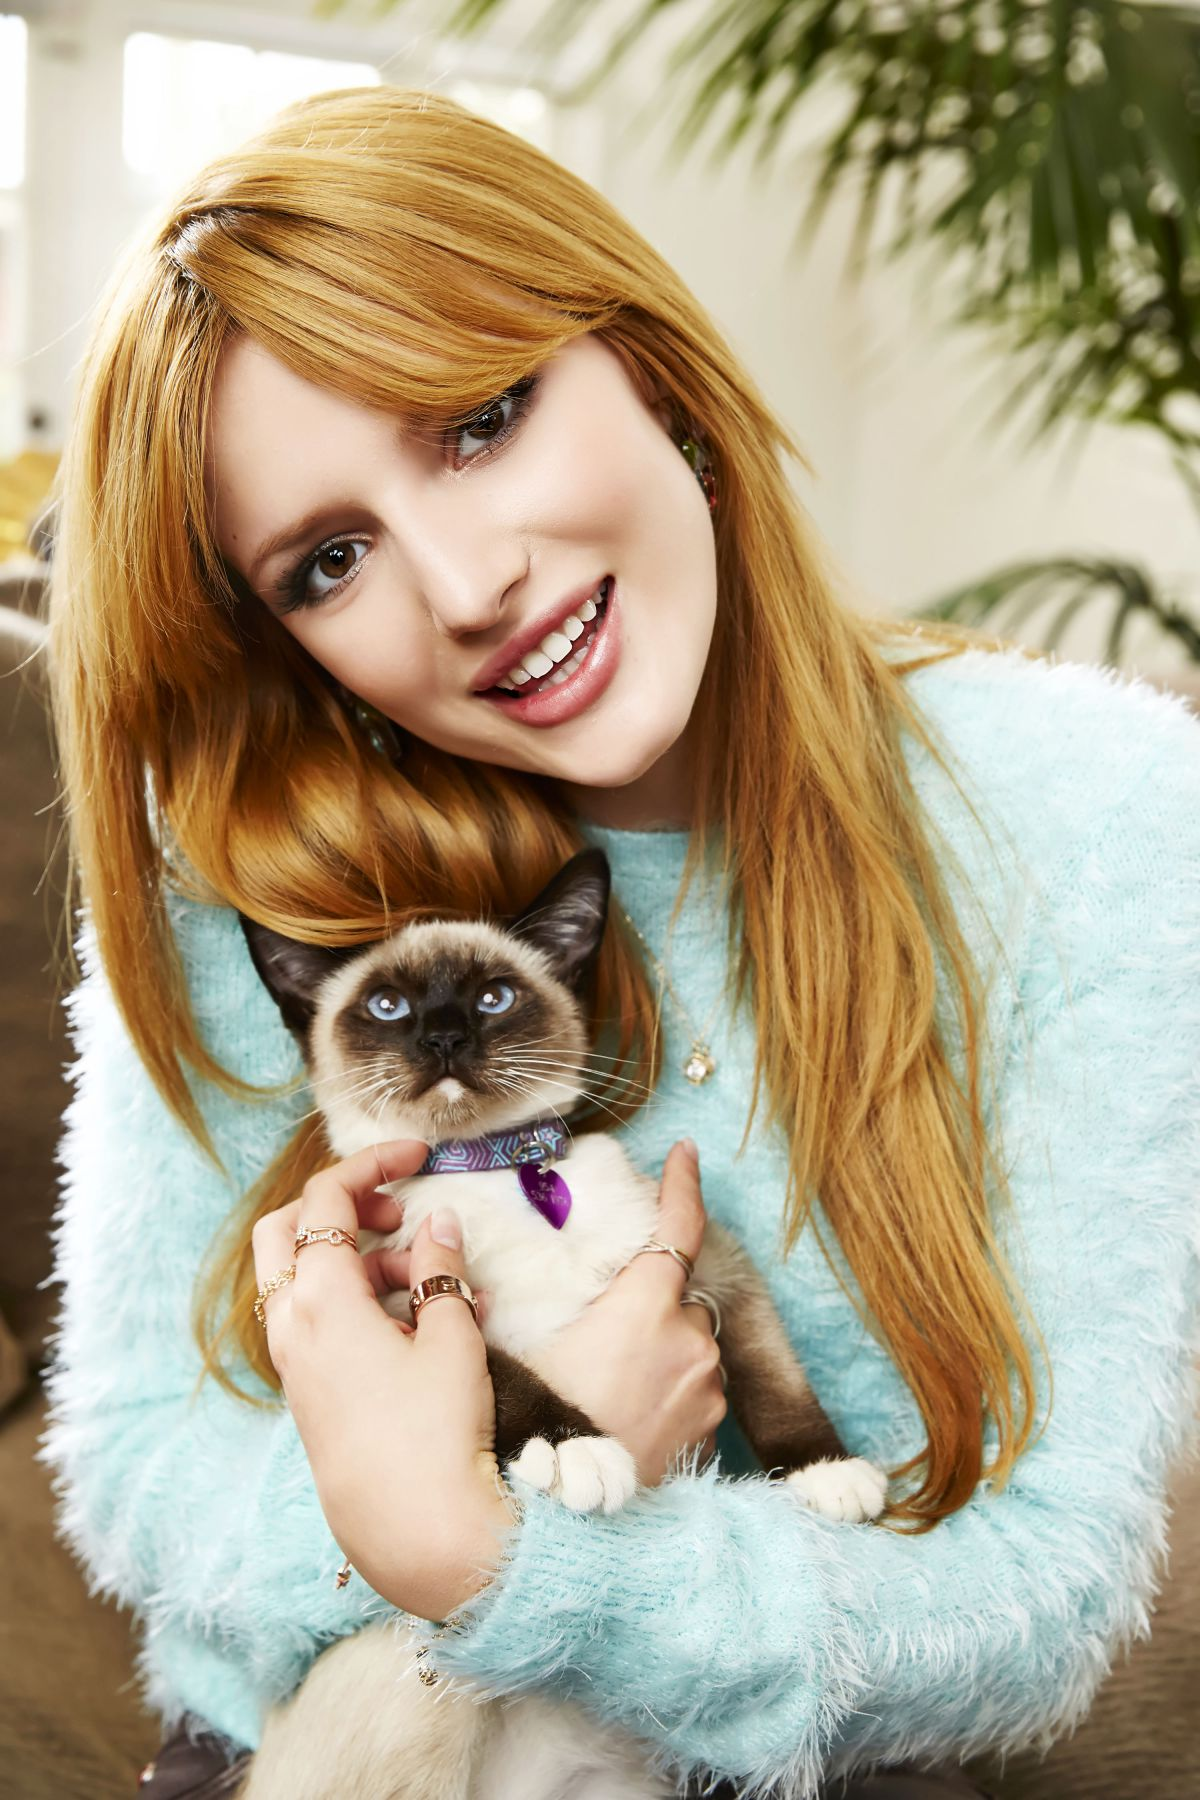 BELLA THORNE - Sara Jaye Weiss Photoshoot